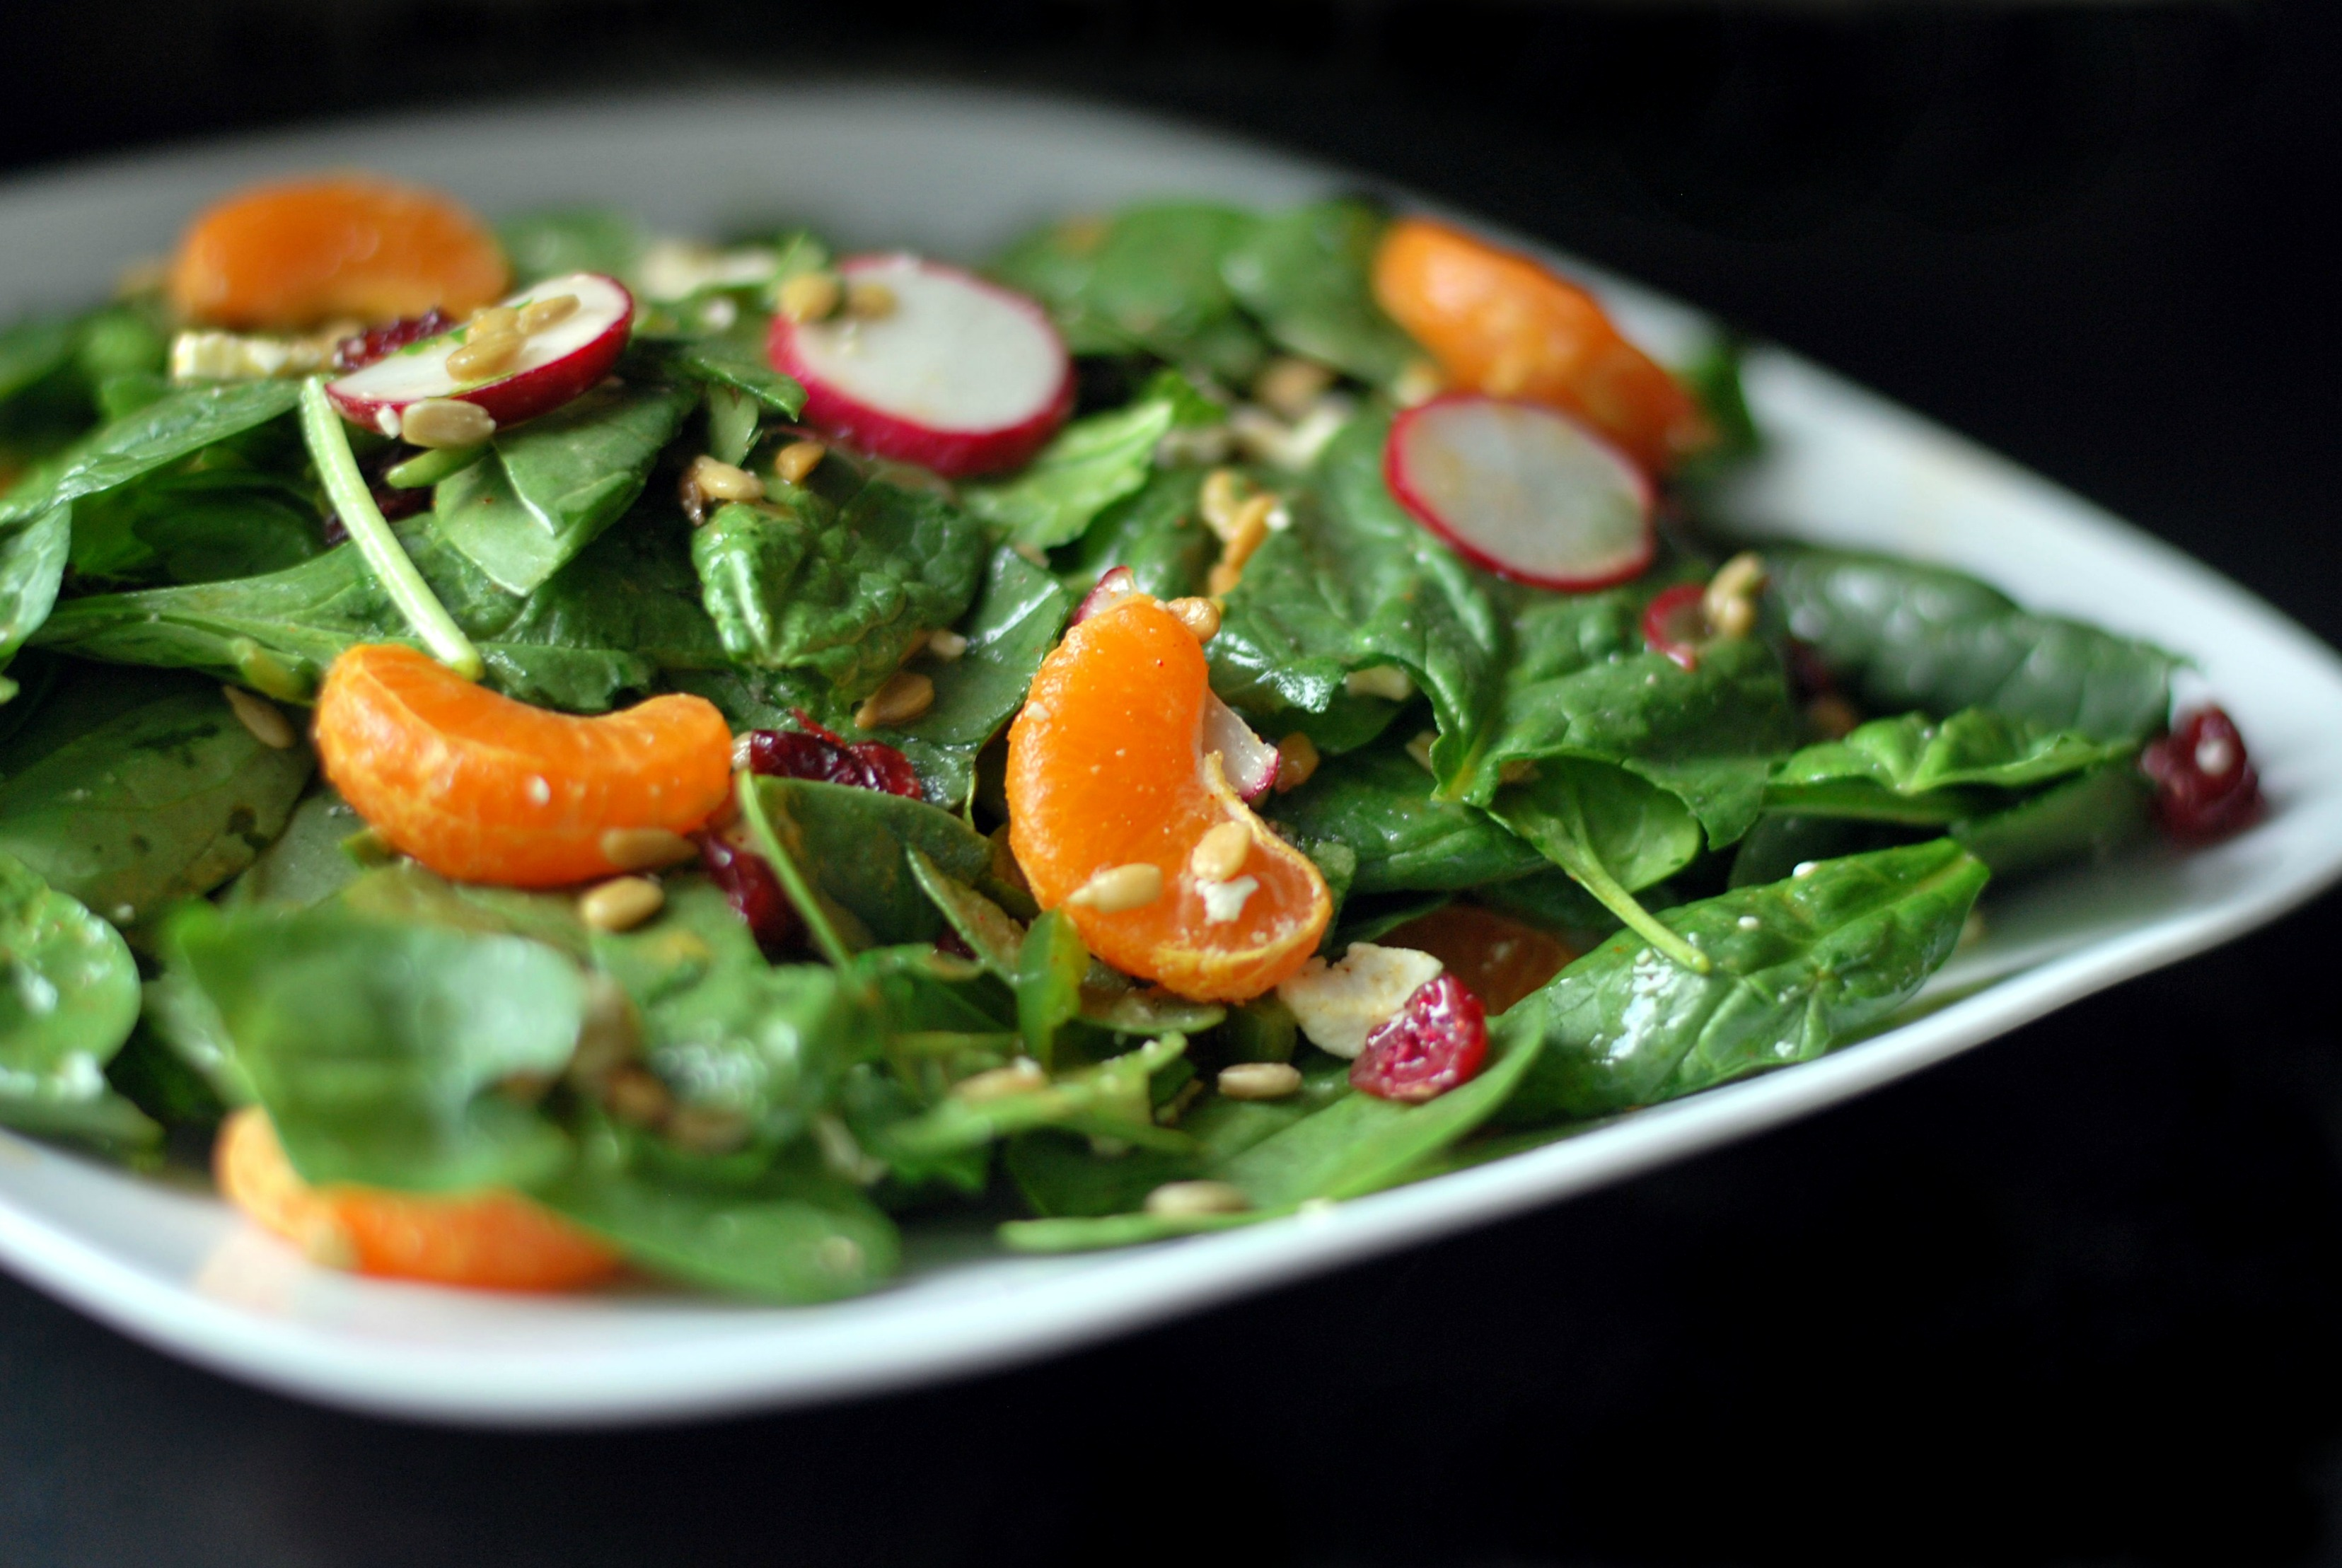 Spinach, Clementine & Feta Salad with Honey-Lime Dressing